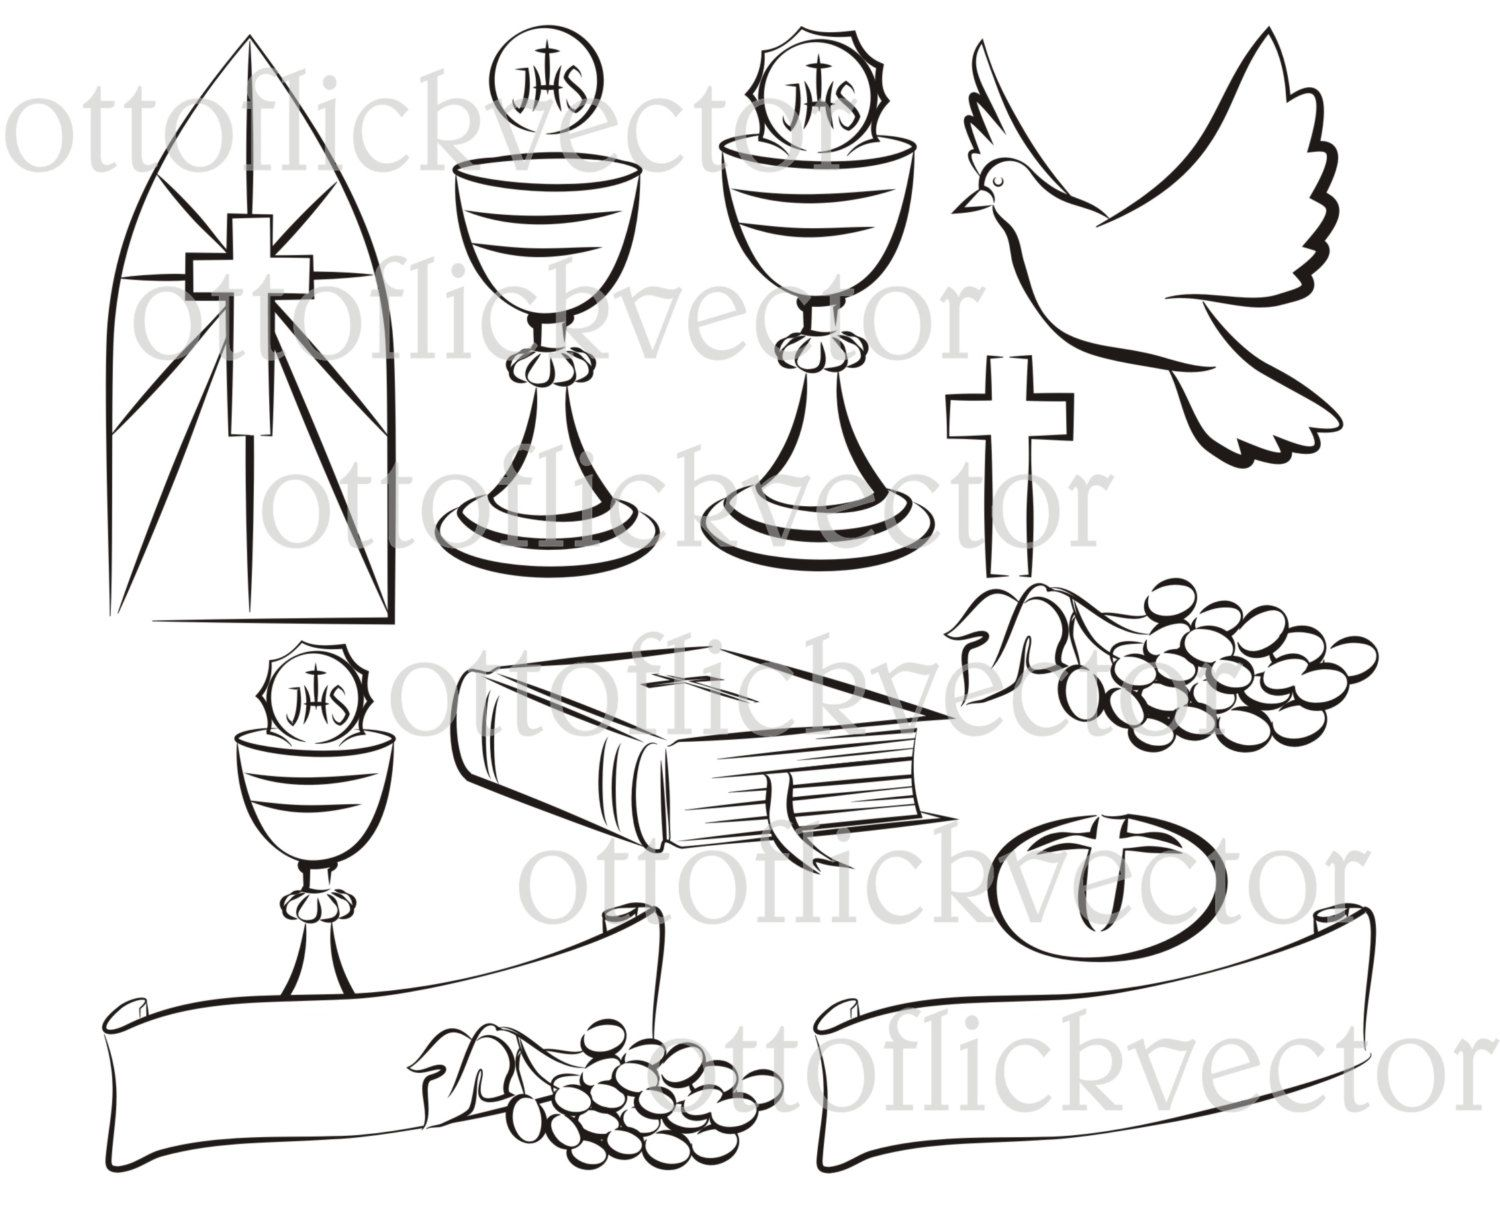 small resolution of vector clipart for printing designing your own project and more you will receive zip file